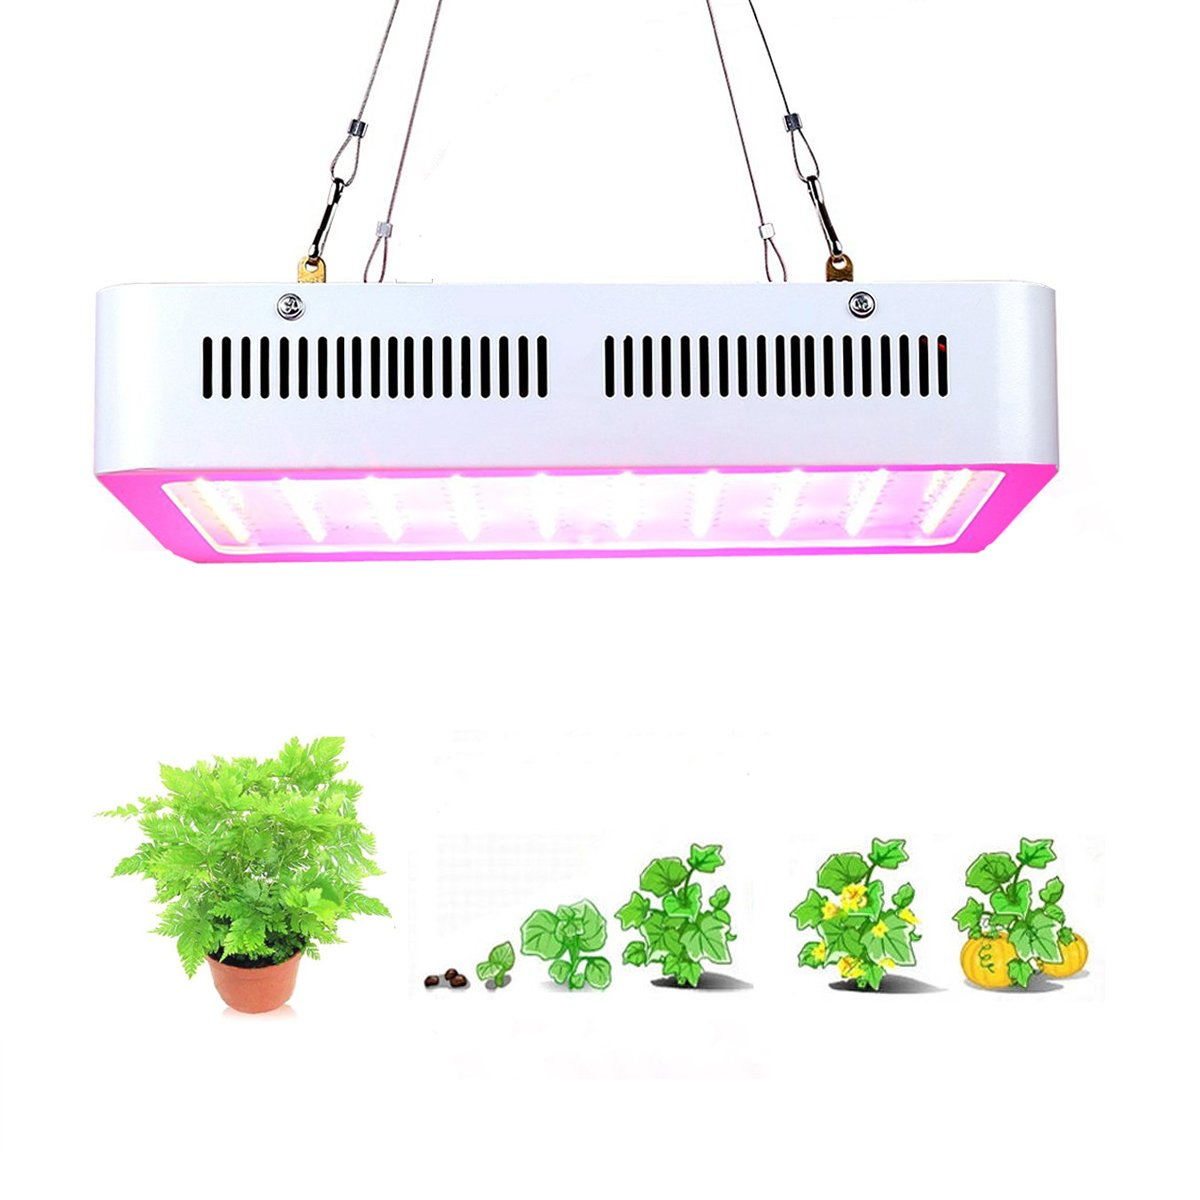 1000W LED Grow Light, Supmovo LED Grow Light Kit, Full Spectrum with UV IR for Green House Veg and Flower, LED Plants Grow Lamp for Indoor Plants Weeding, Growing